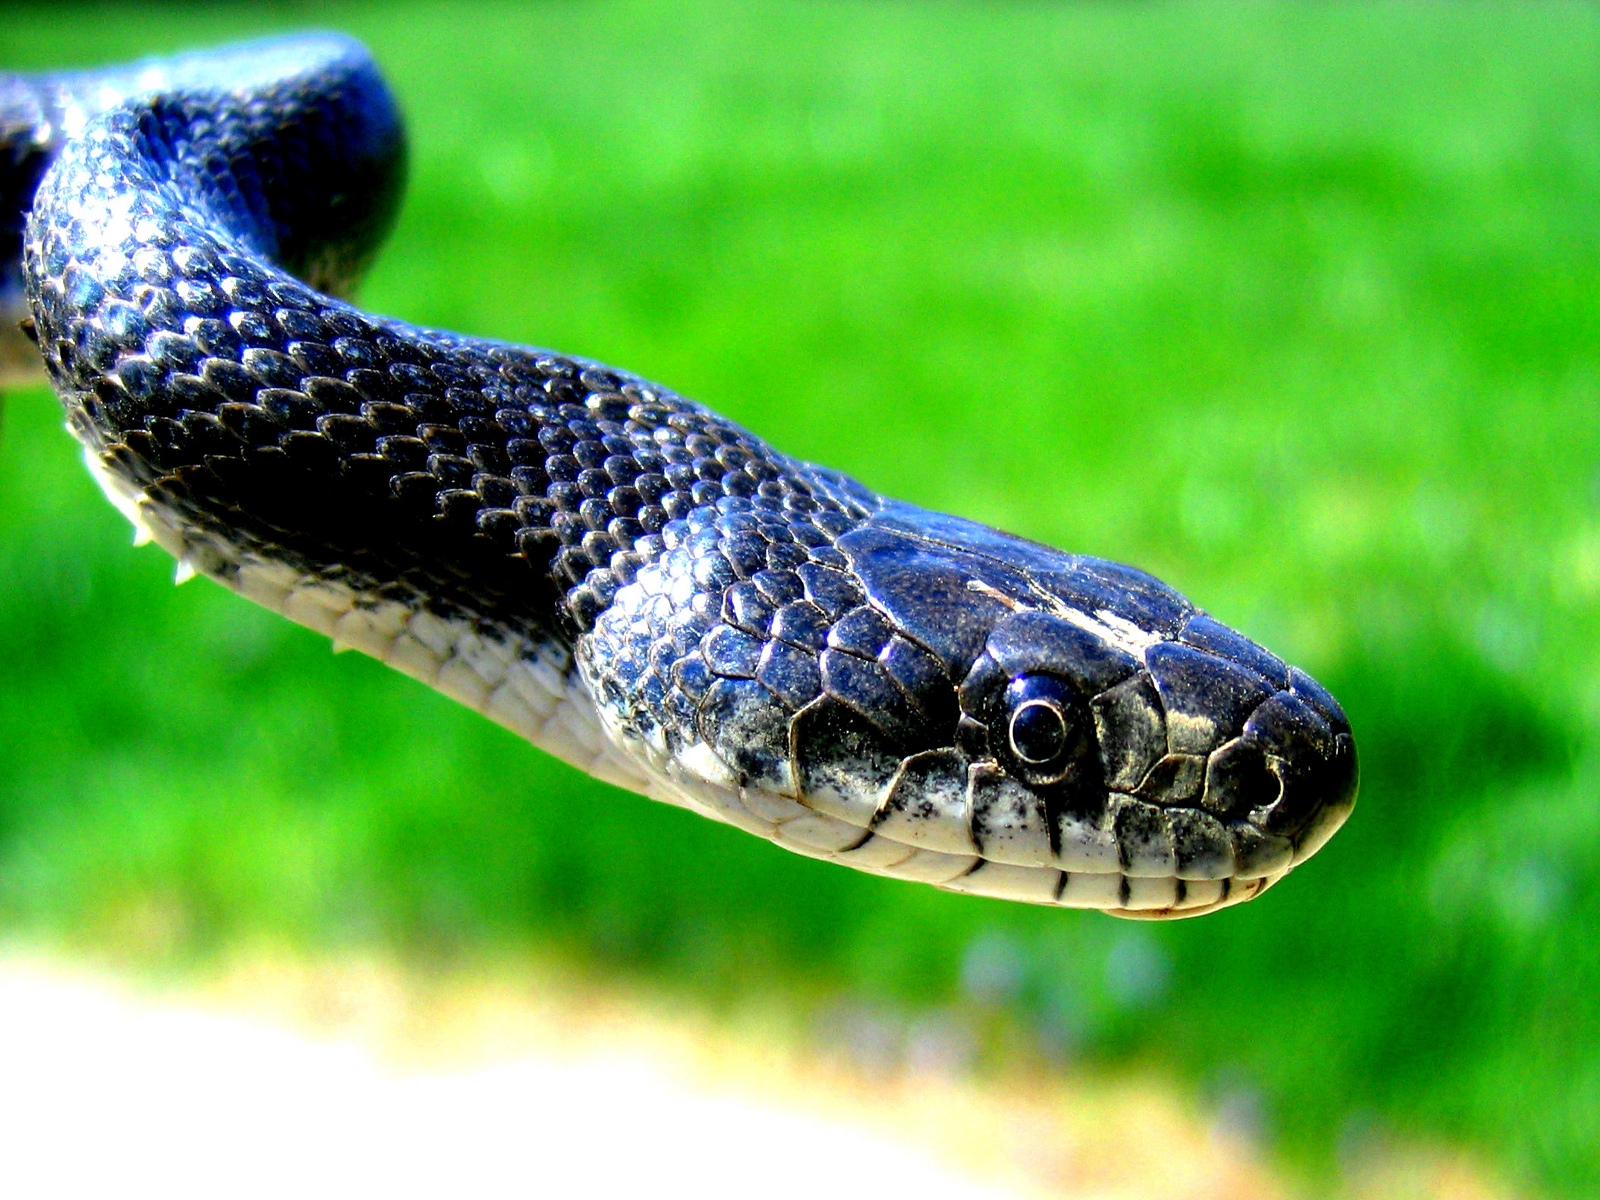 HD Wallpaper Of Blue Snake